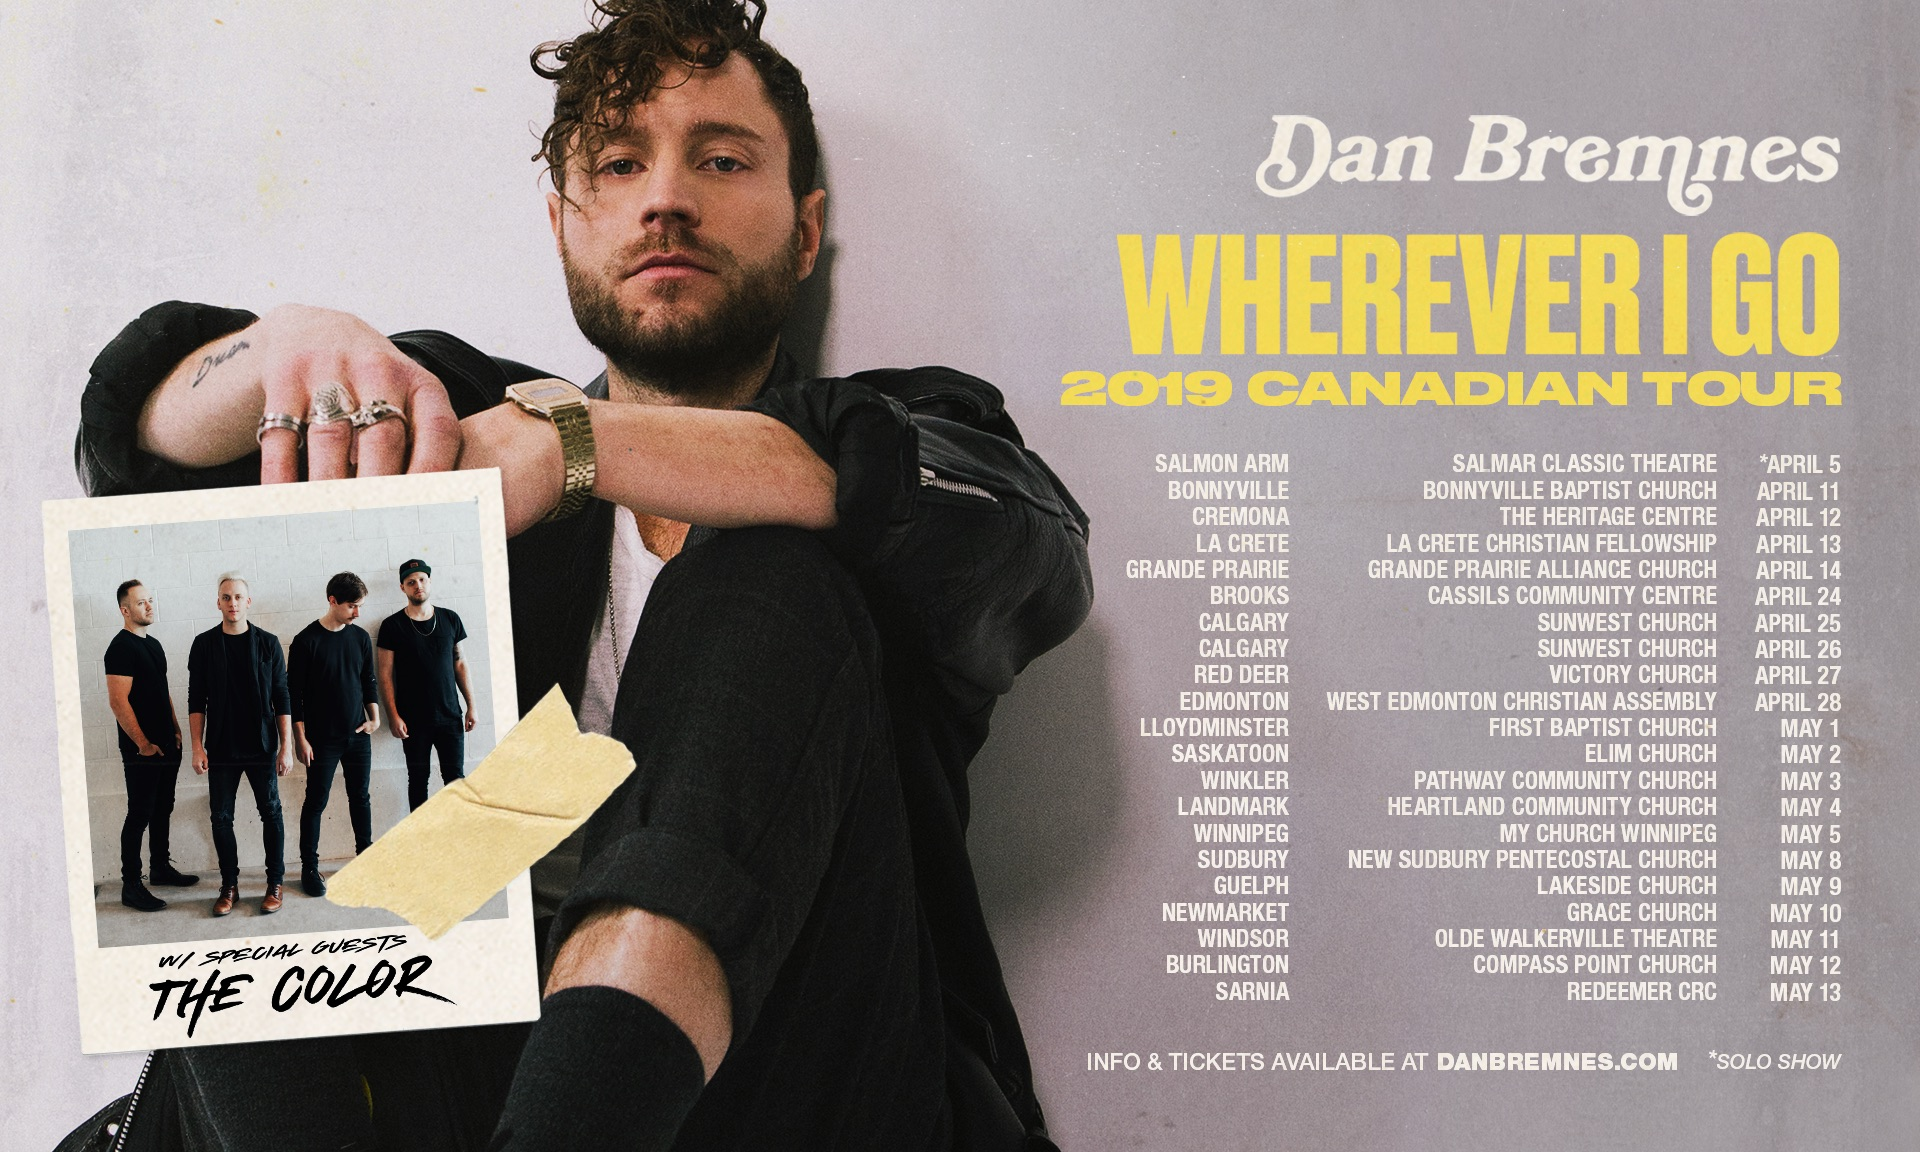 Tickets for Dan Bremnes, Wherever I Go Tour with The Color in Lloydminster from BuzzTix